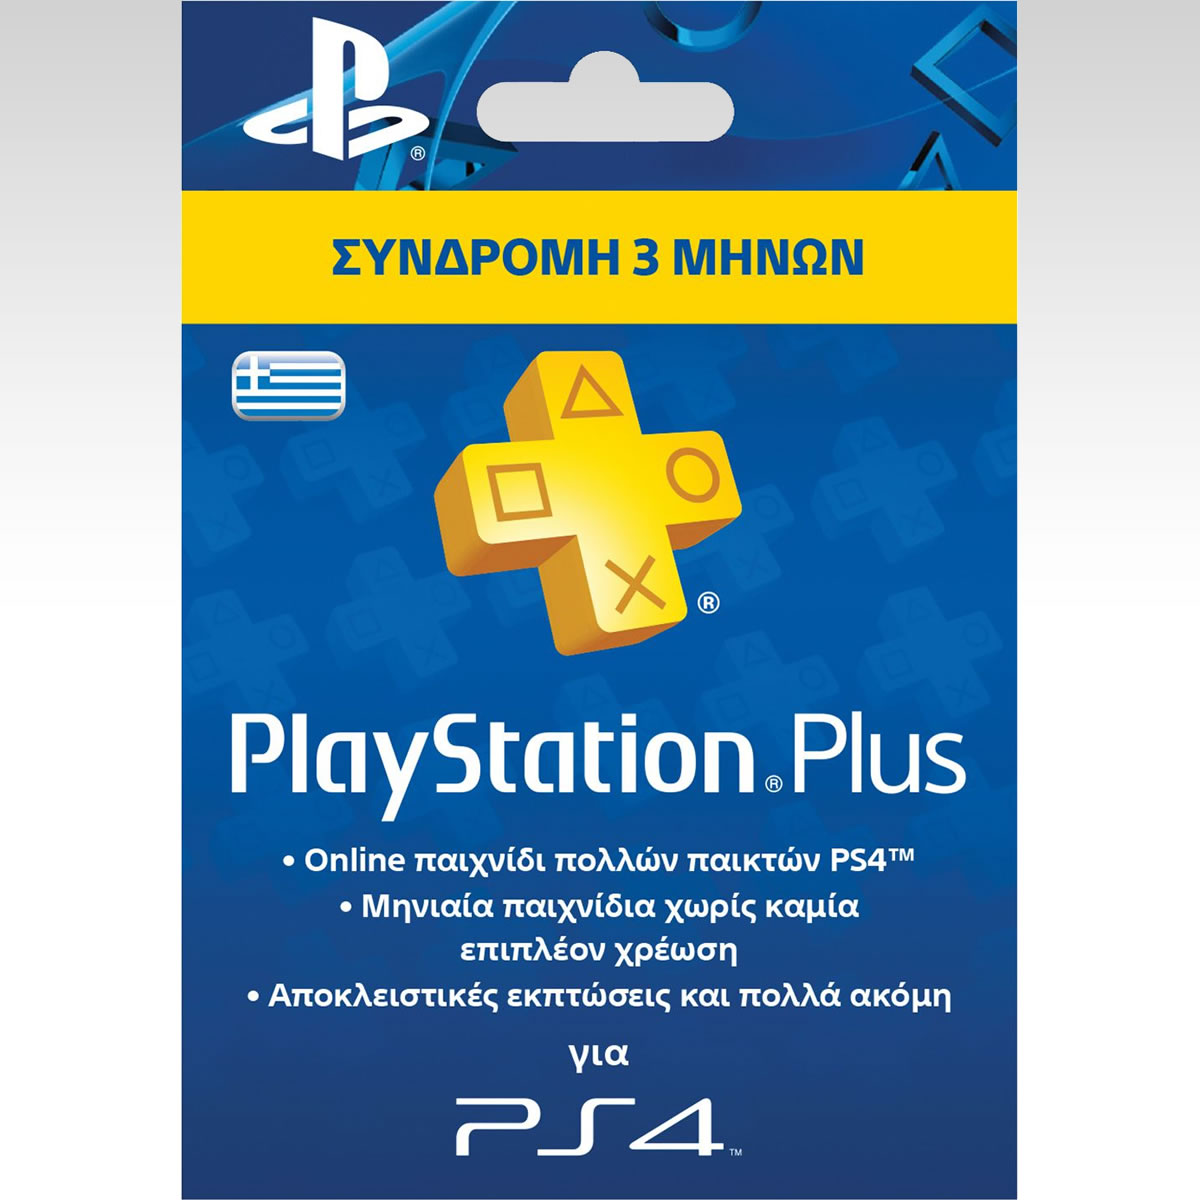 SONY PLAYSTATION PLUS SUBSCRIPTION 3 MONTHS Hanging Card (PSN)